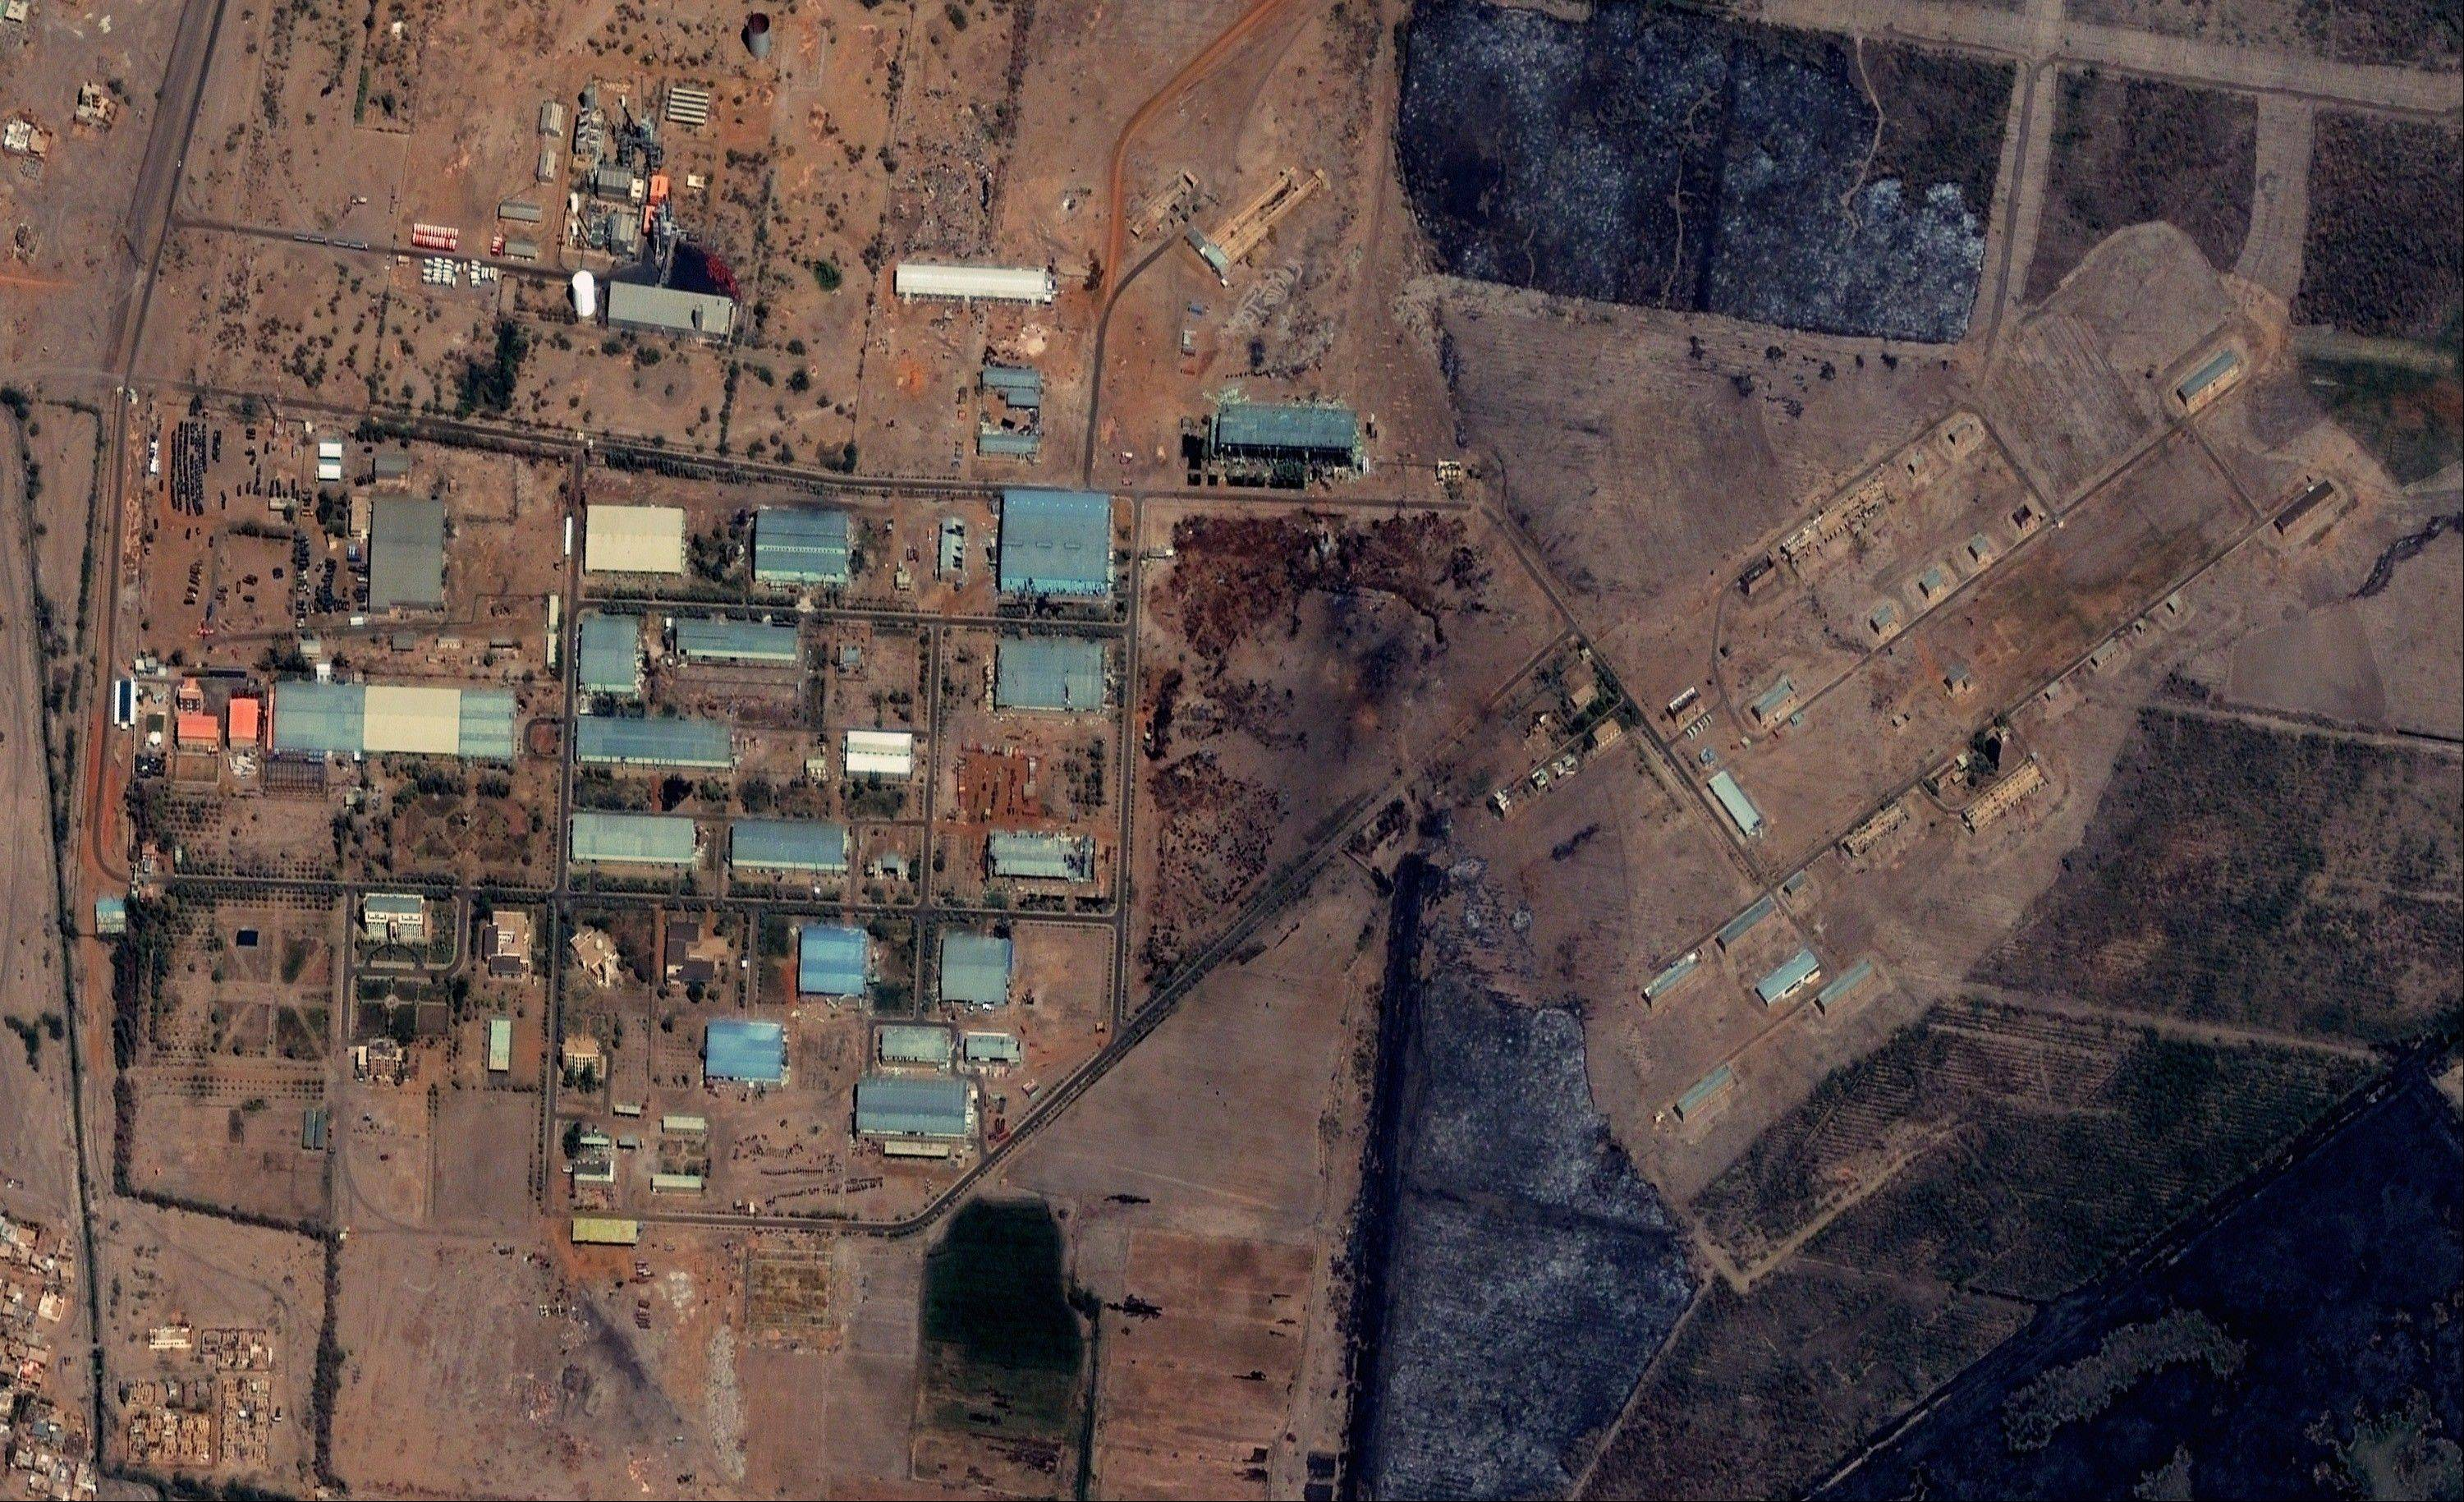 The Yarmouk military complex in Khartoum, Sudan seen in a satellite image made on October 12 2012, prior to the alleged attack. A U.S. monitoring group says satellite images of the aftermath of an explosion at a Sudanese weapons factory suggest the site was hit by an airstrike.